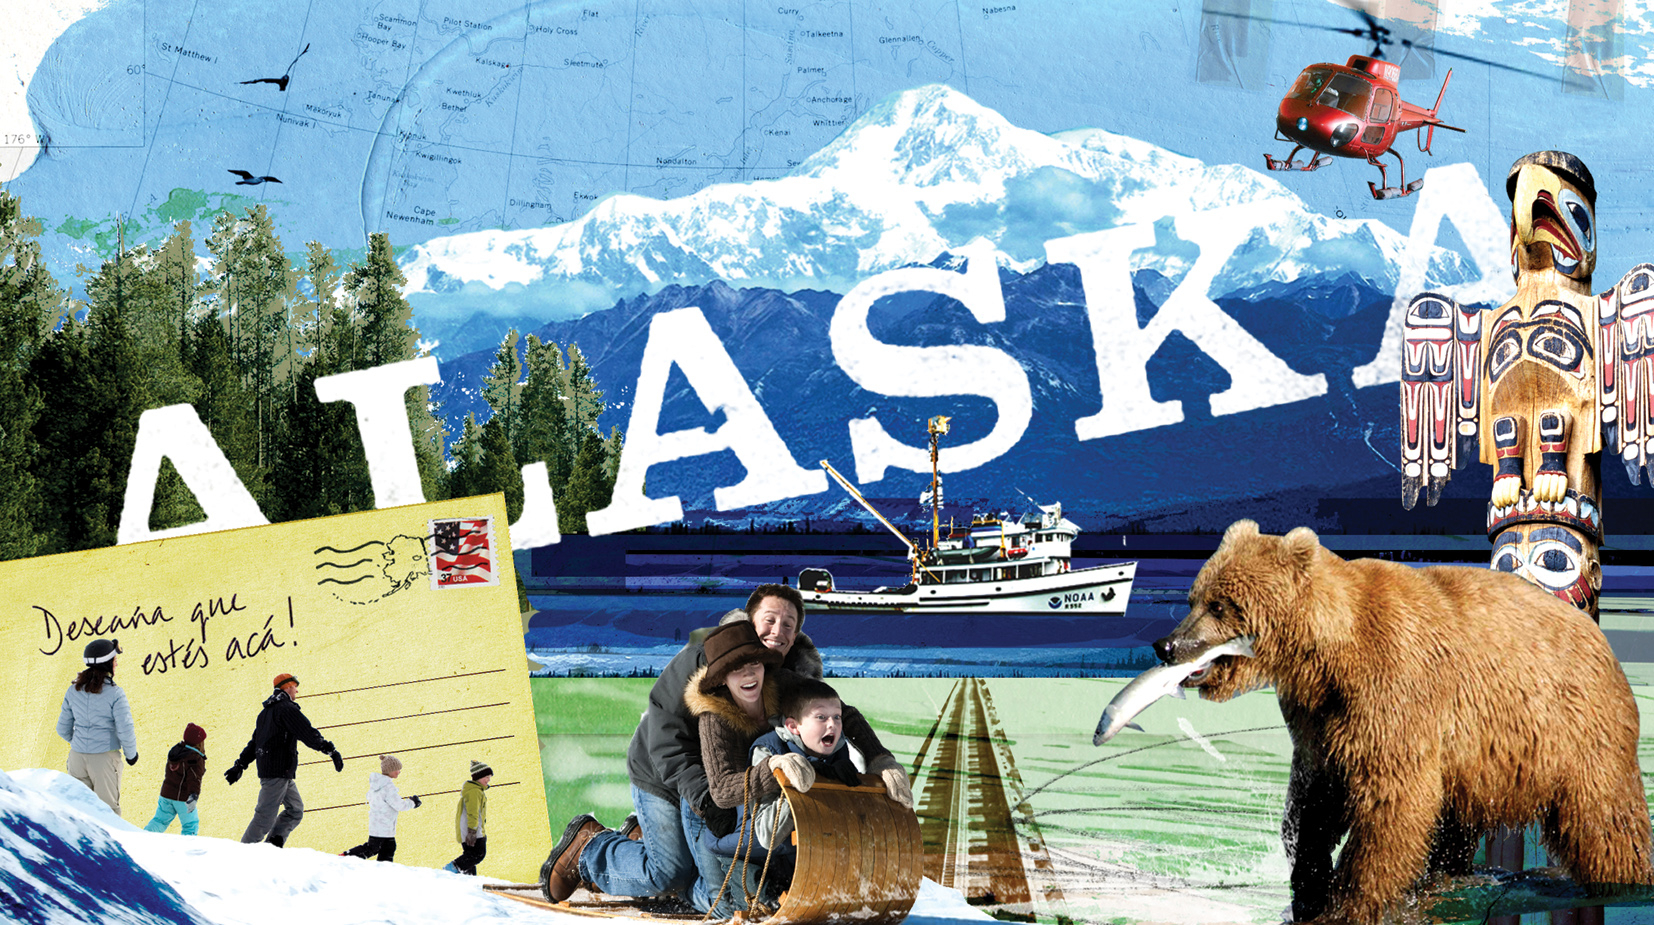 Alaska Travel Guide AARP AVIVA Magazine